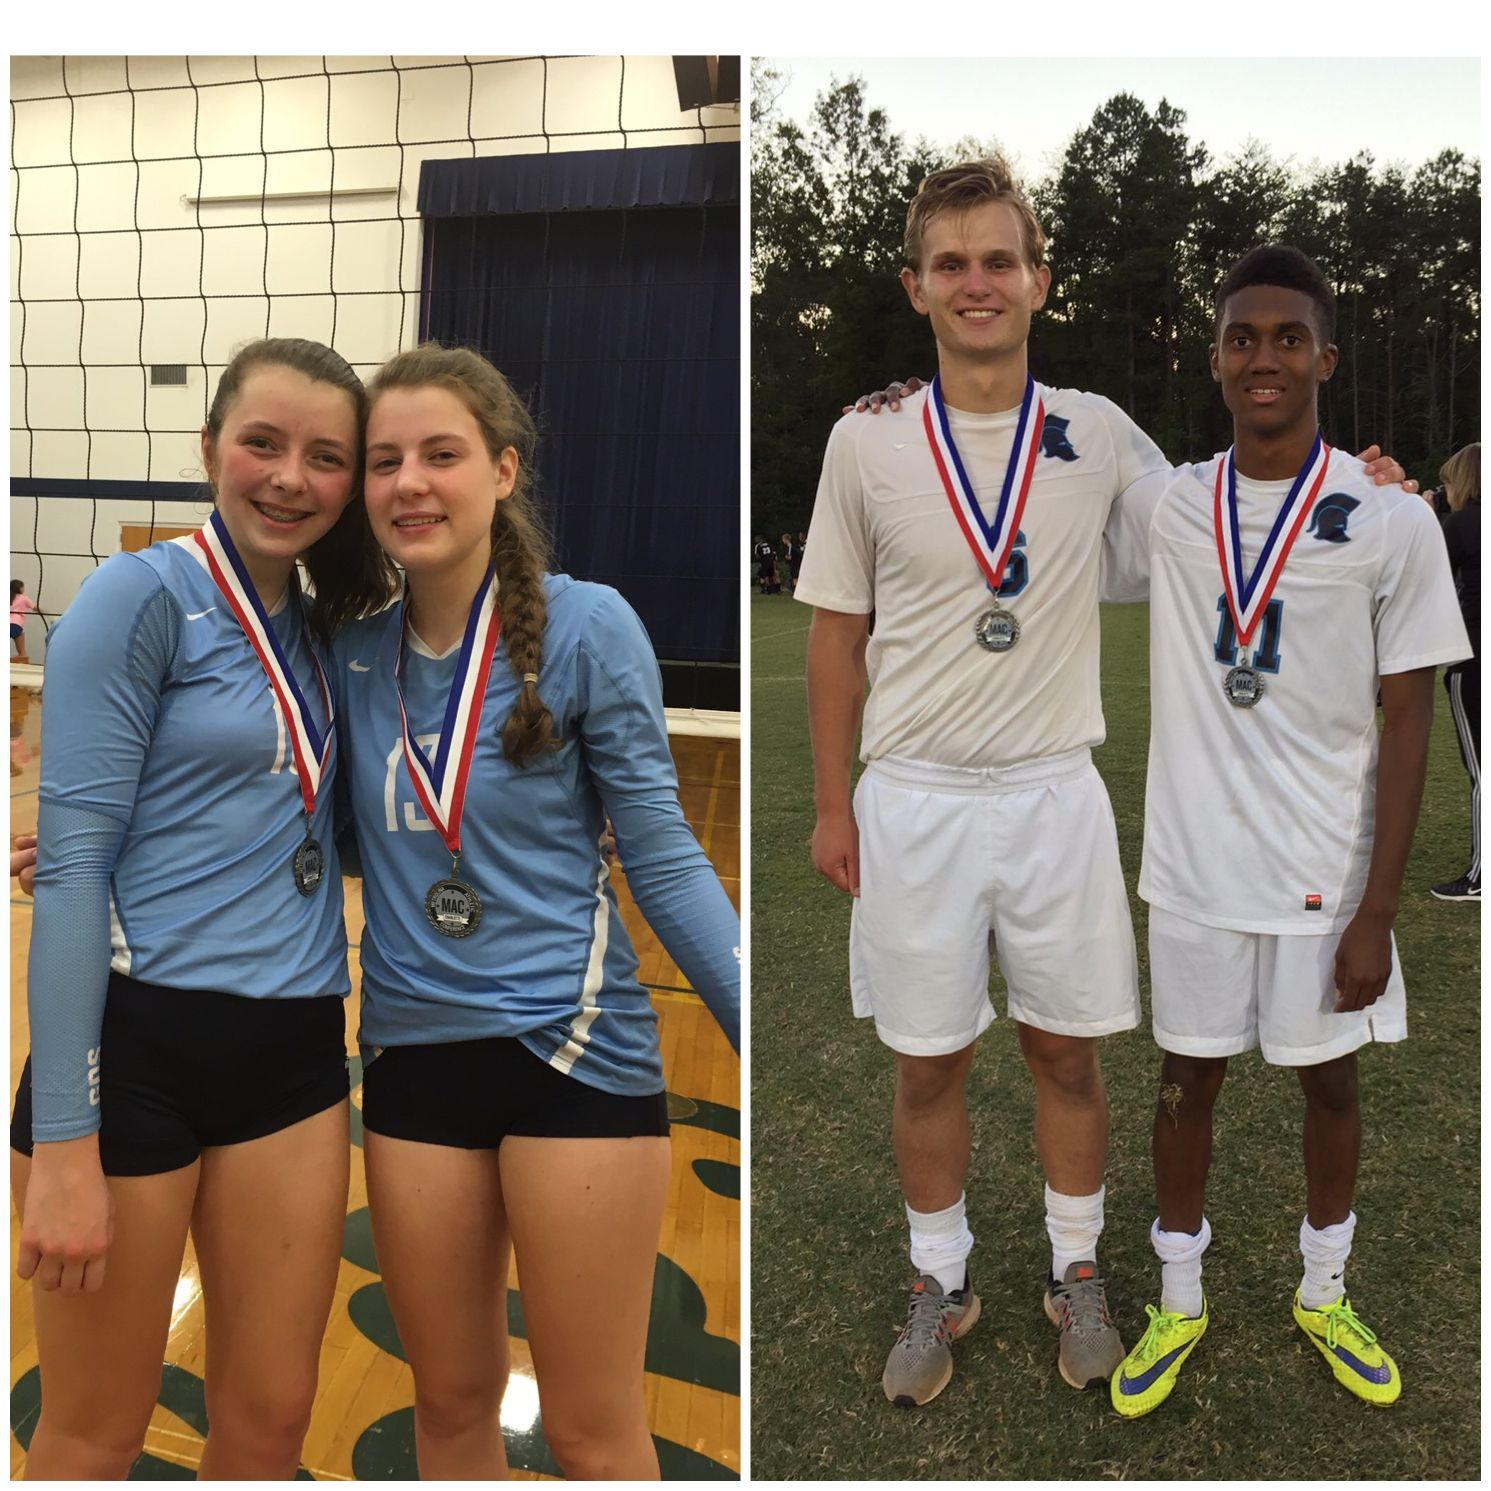 Congrats To Sidney Bing Lauralee Hurst For Making The Mac All Conference Volleyball Team And Nick Deely Ty Owen Volleyball Team Varsity Jacket Student Life